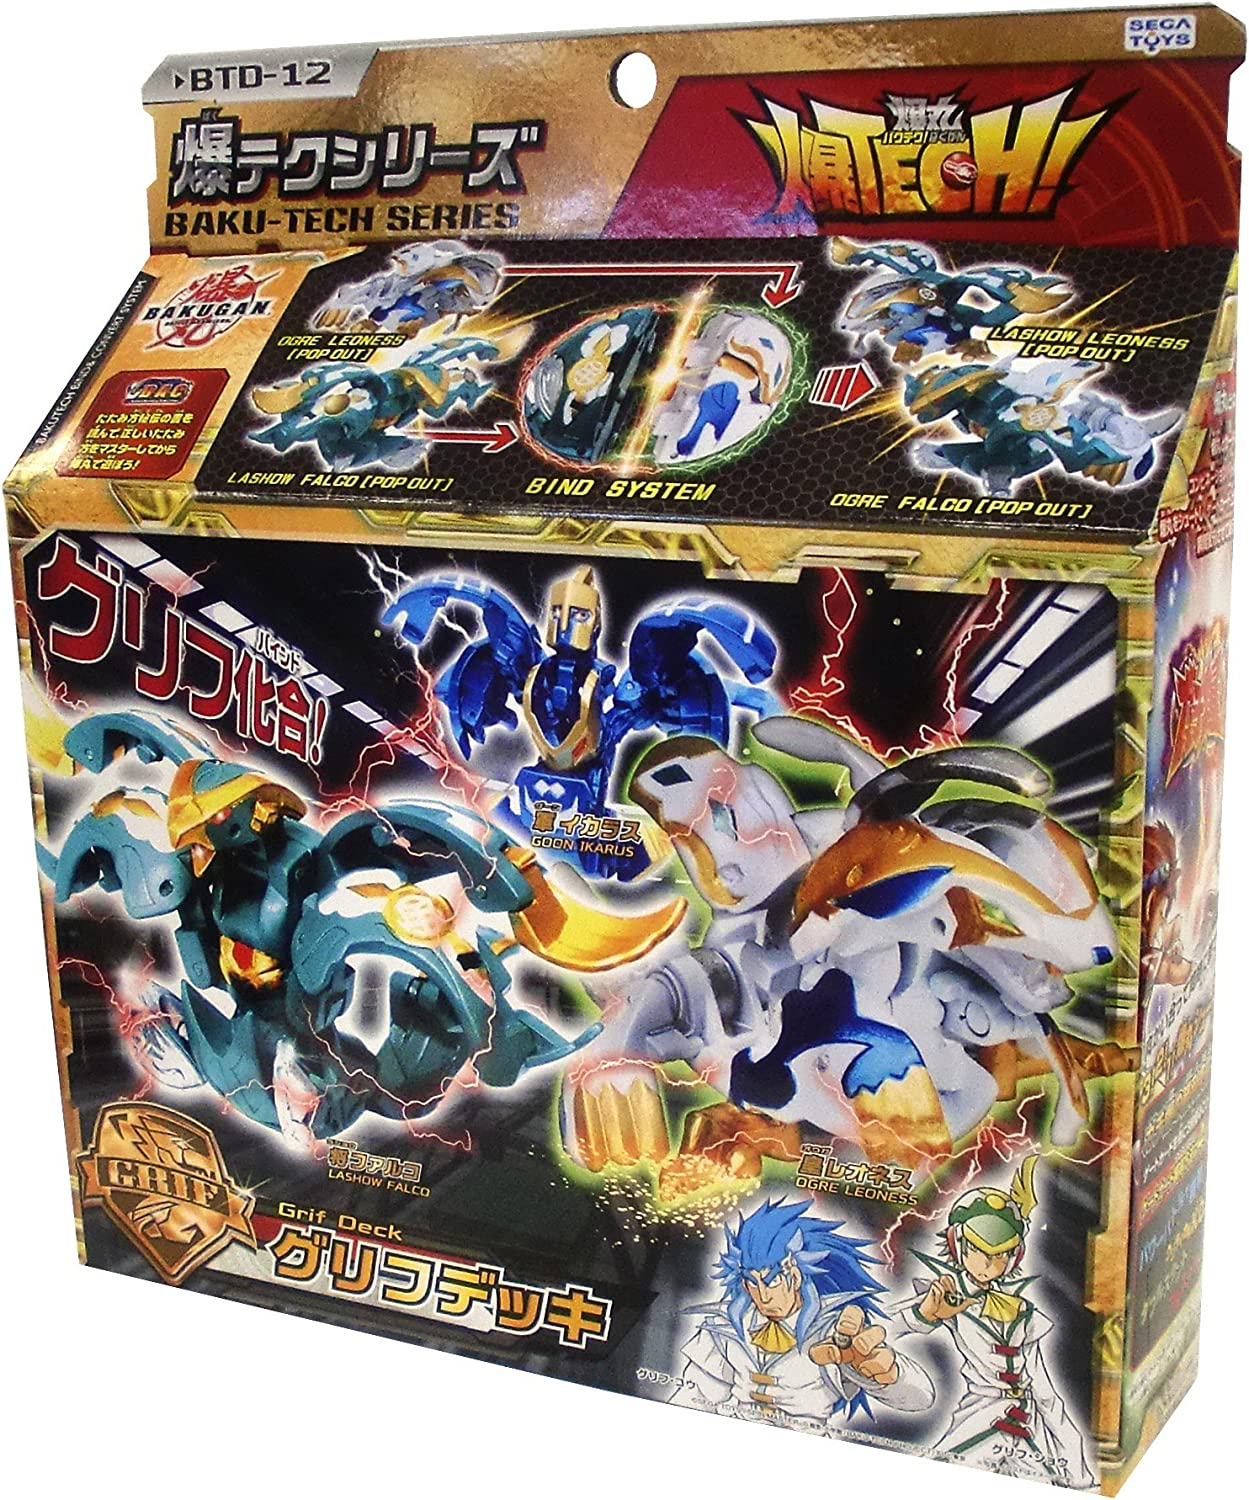 Bakugan BTD-12 Baku-Tech glyph deck (japan import)